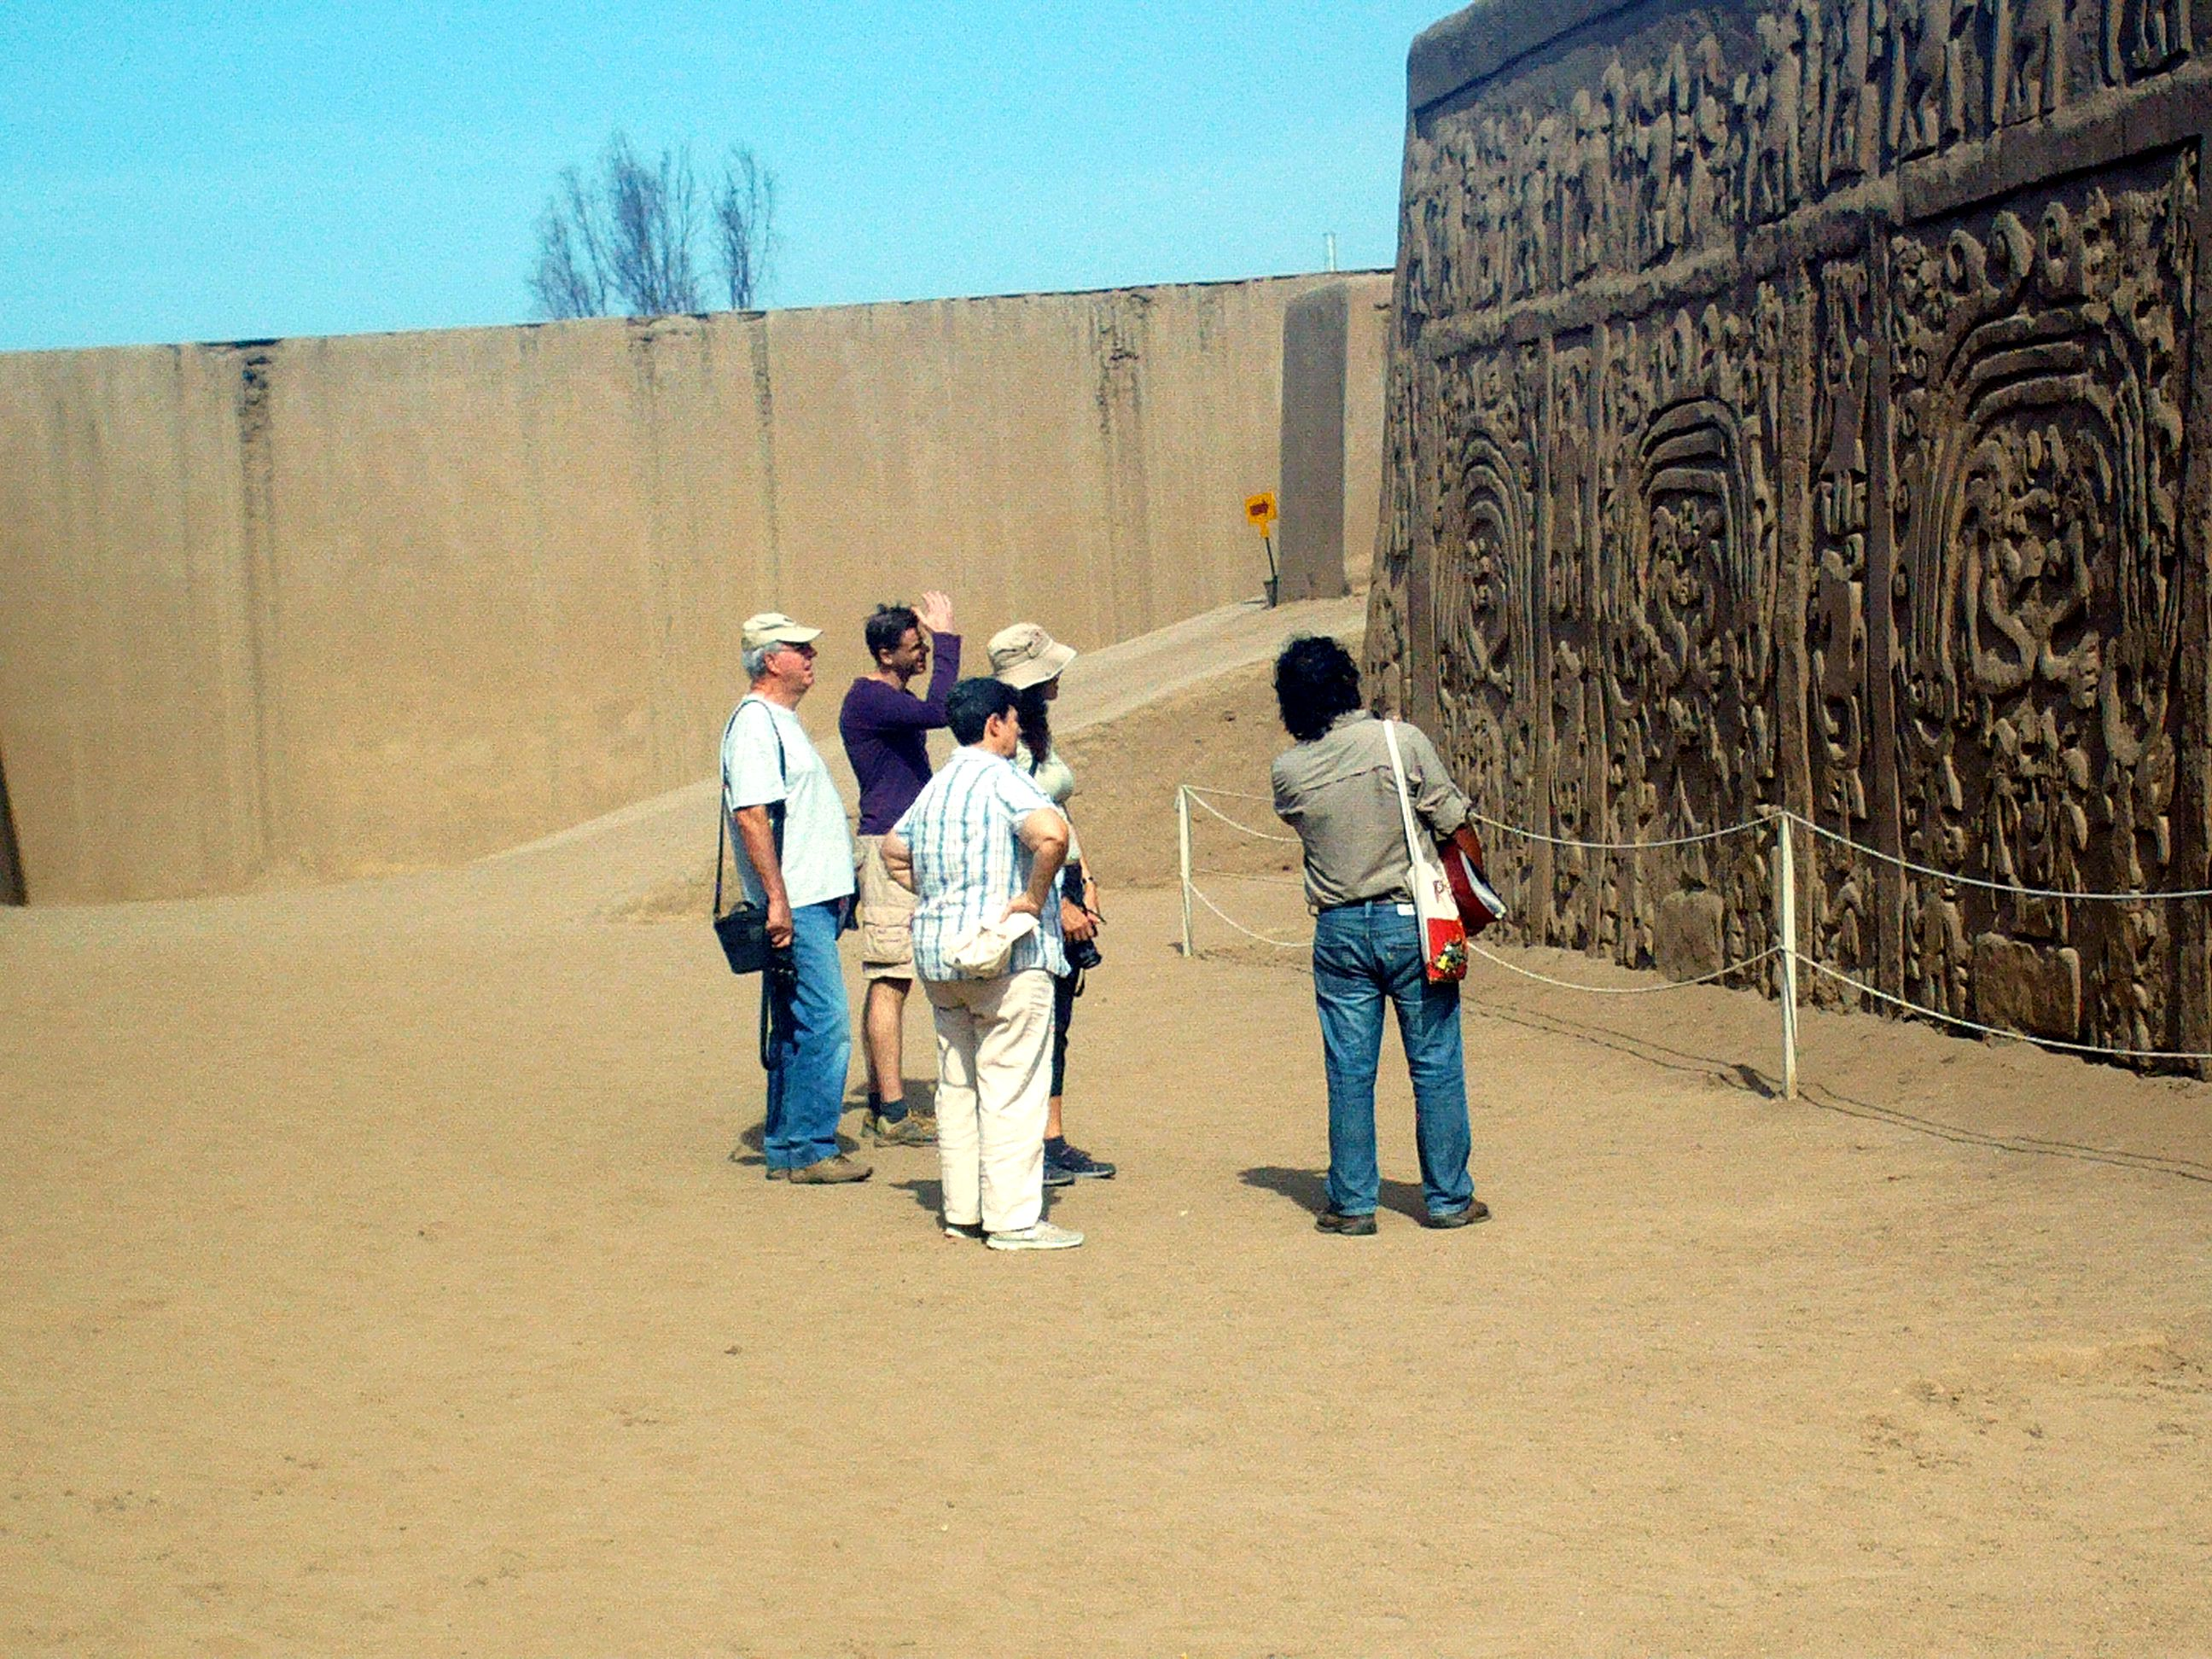 La Libertad Trujillo Tours: Trujillo City Tour + Huanchaquero Tour. The best tourist packages in Peru and South America.